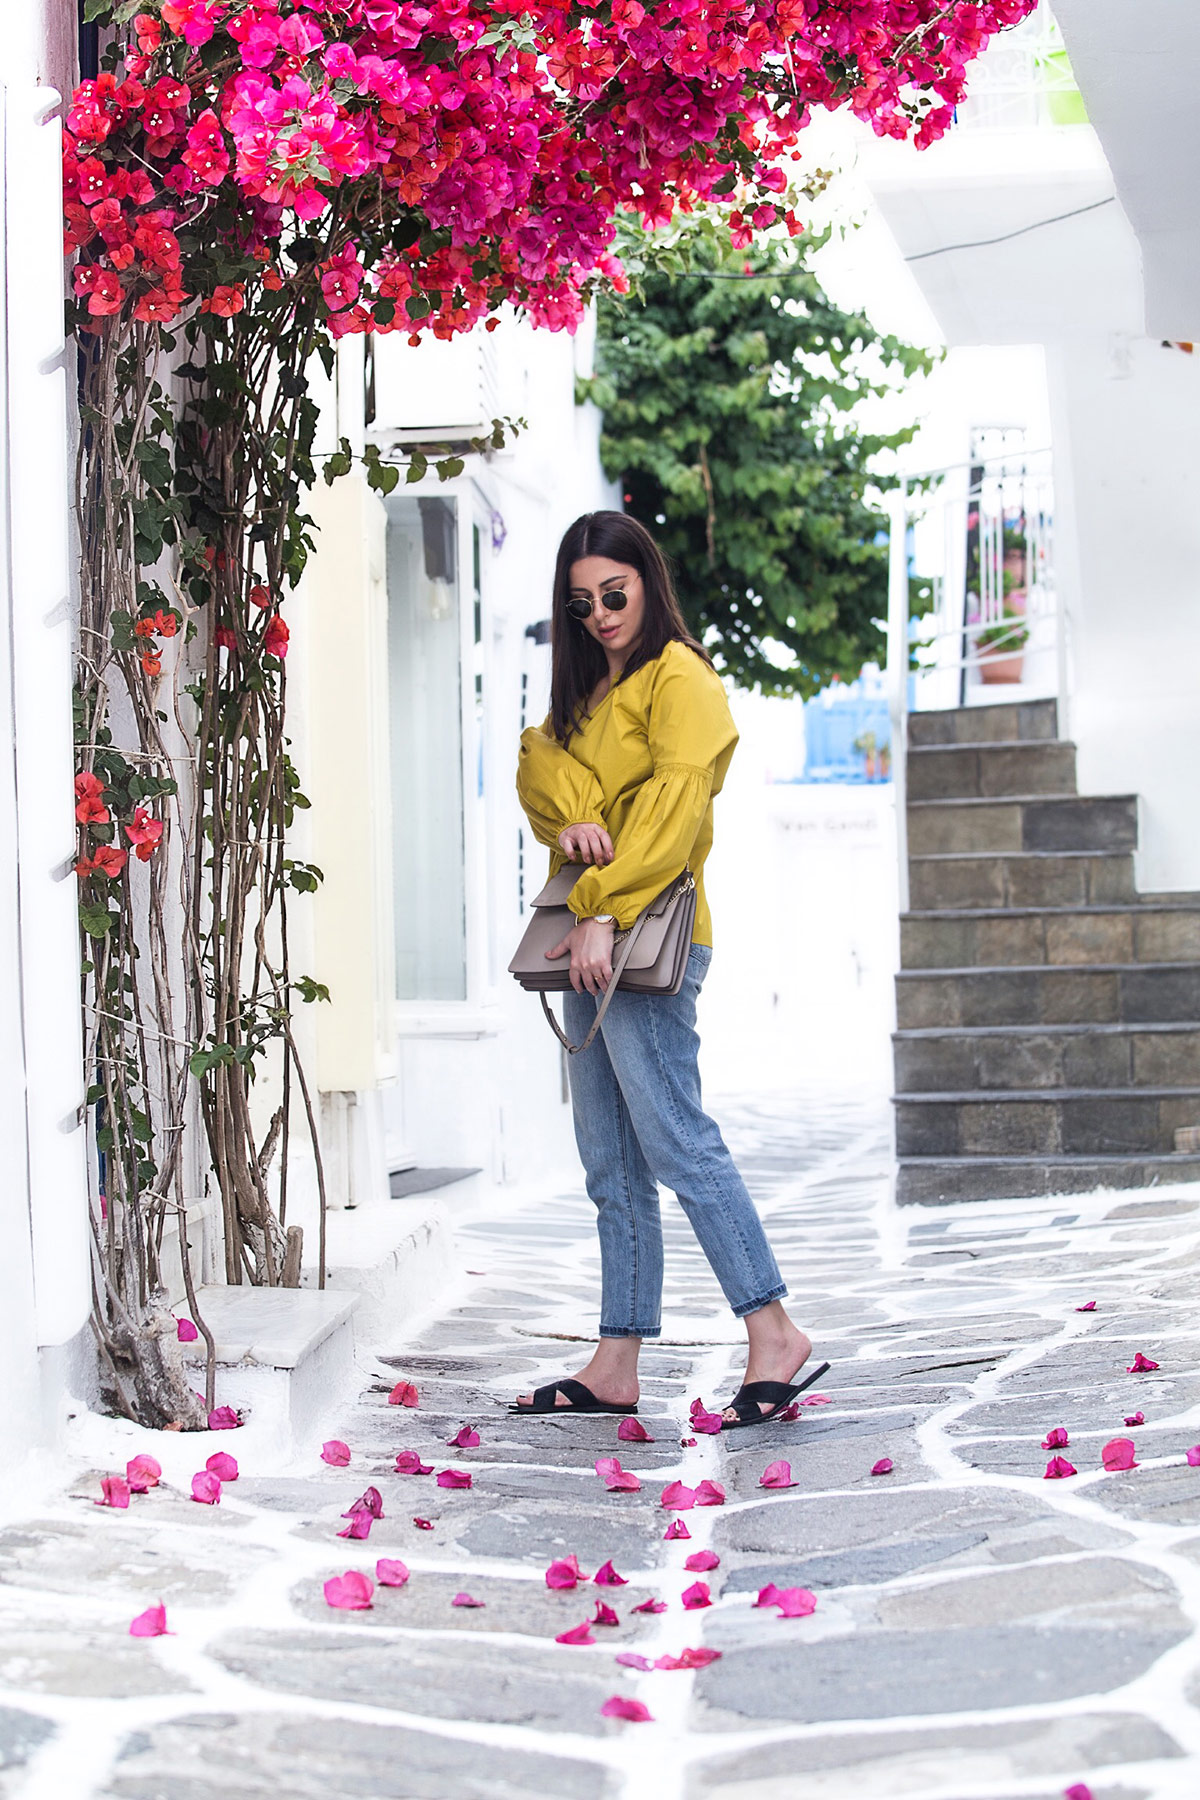 Greek islands fashion - What to wear in Greece by Stella Asteria - Fashion & Lifestyle Blogger